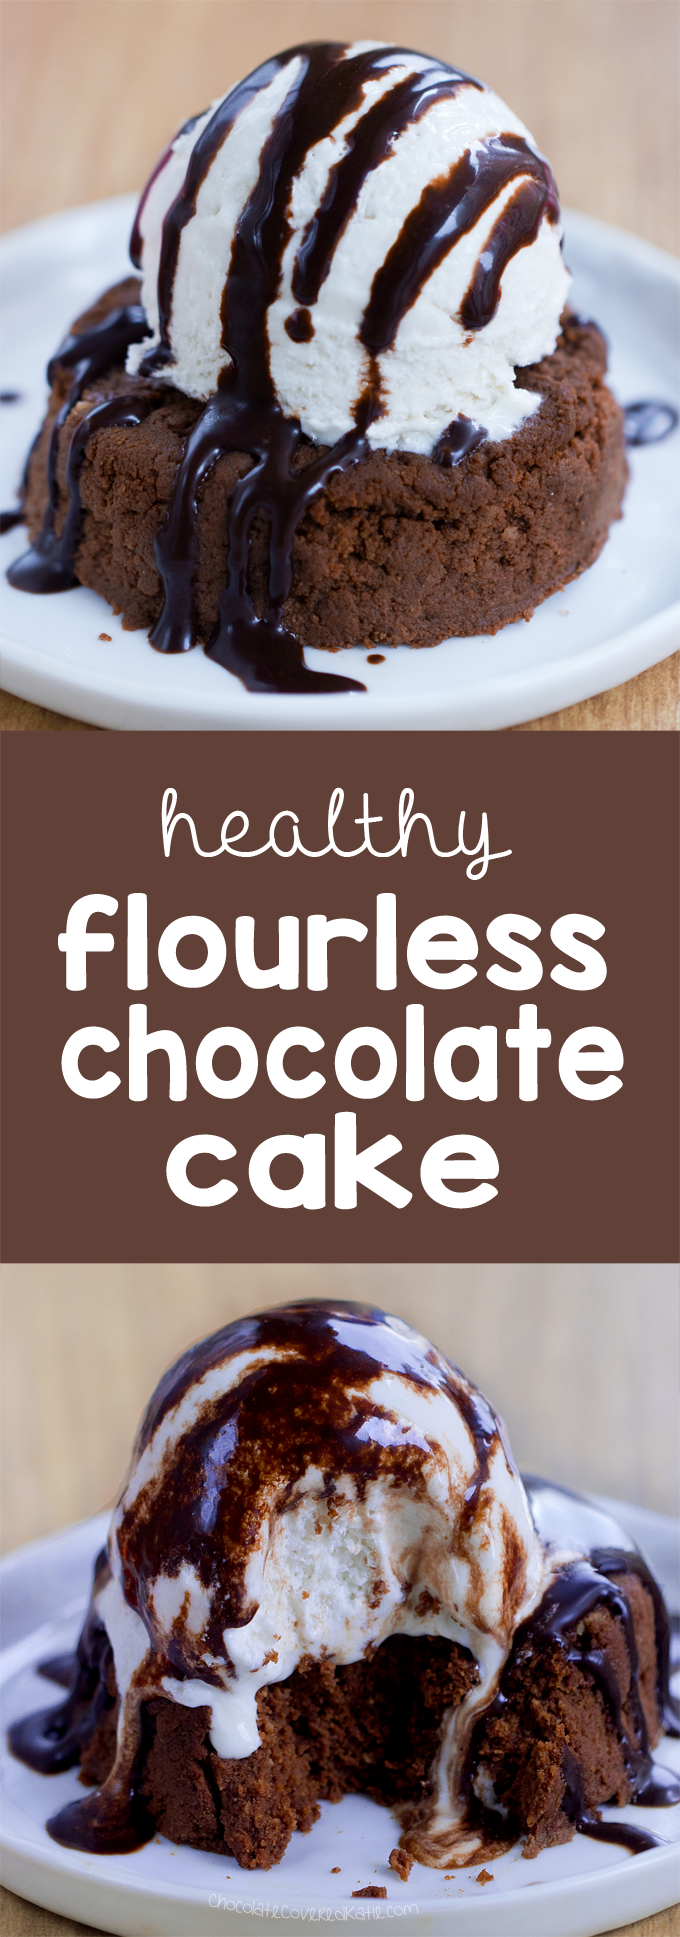 Flourless Chocolate Cake Ingredients 1 2 Cup Cocoa